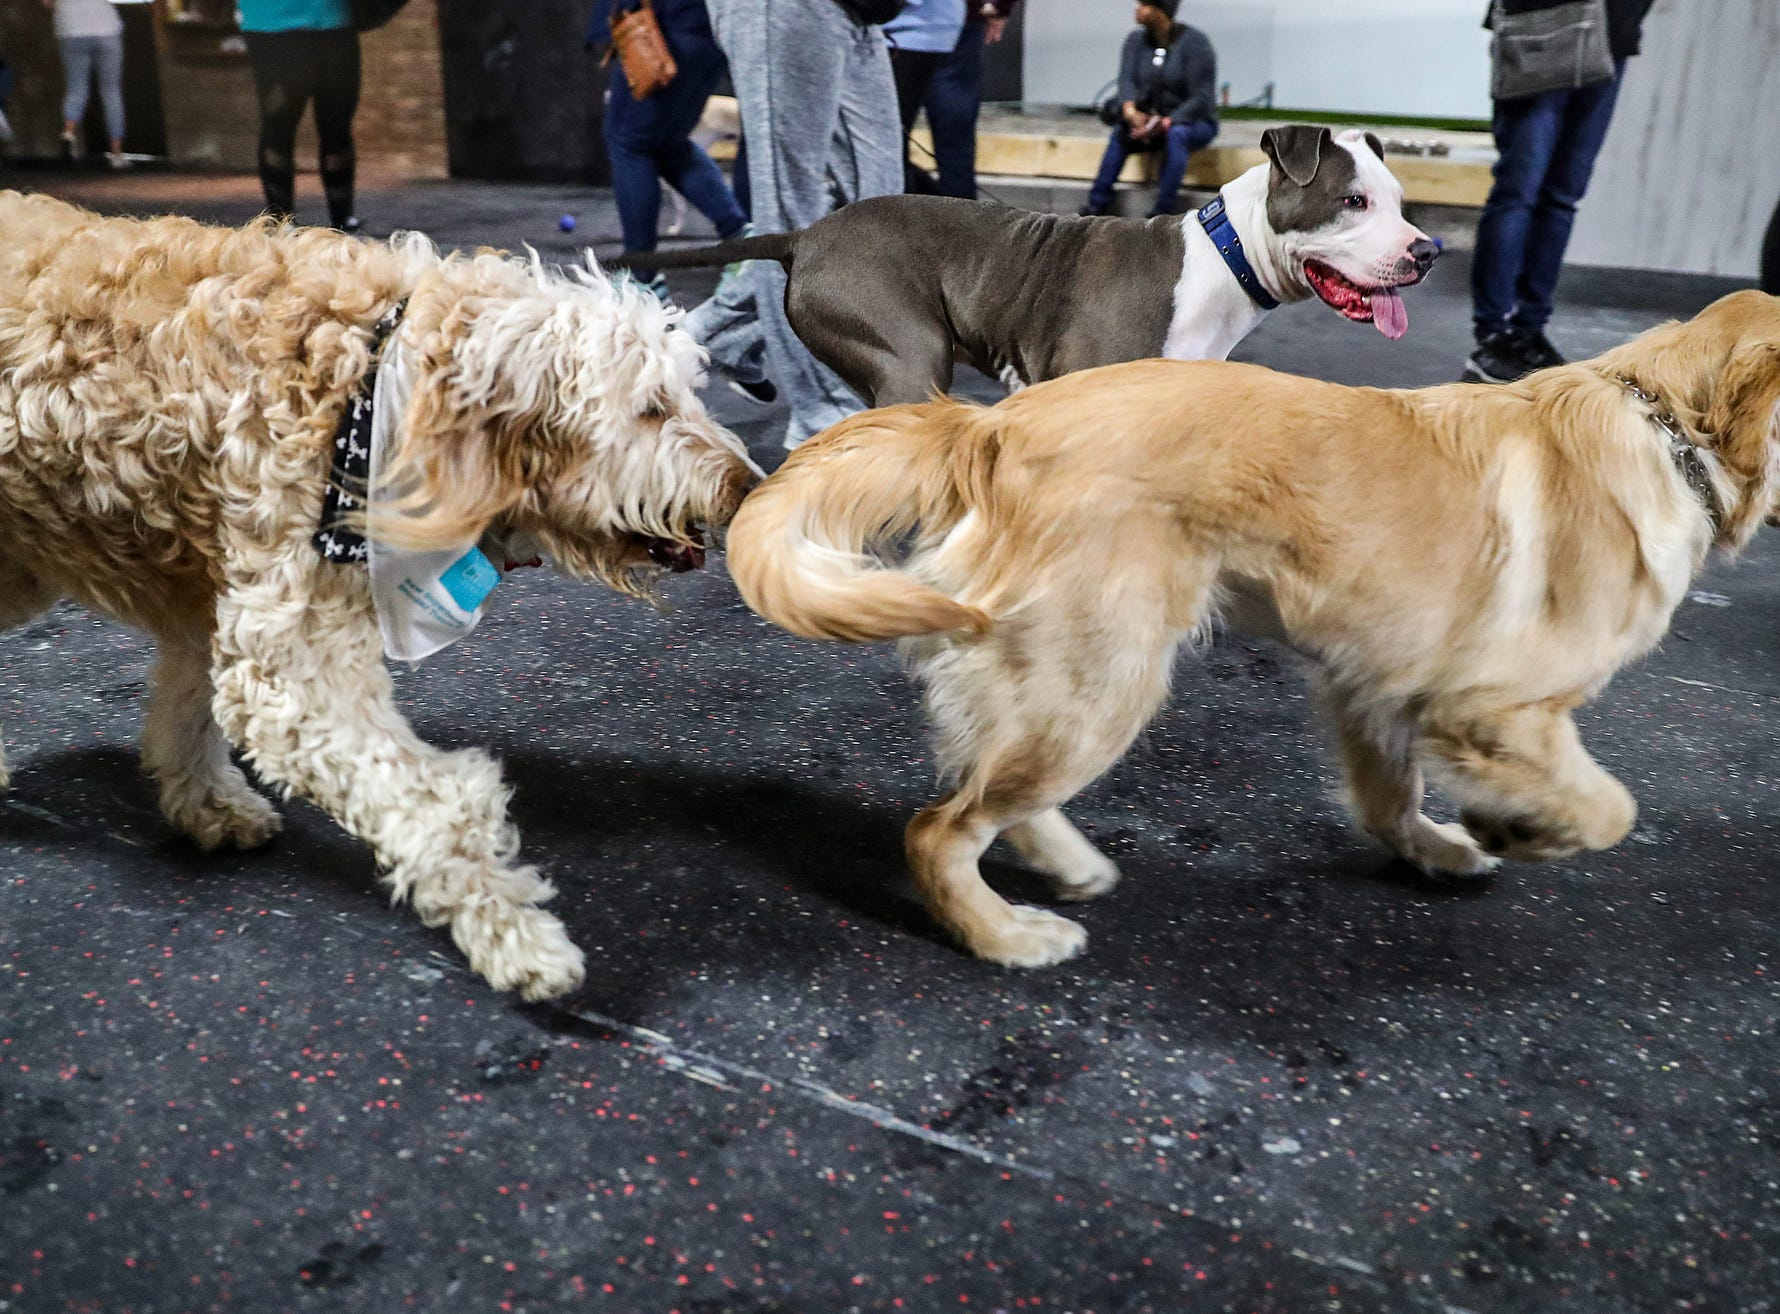 Dogs romp around during the grand opening of Indy's Indoor Bark Park in Indianapolis, Saturday, Jan, 5, 2019. The large indoor space offers owners a place to exercise their dogs regardless of the weather. Membership options include single-day, multi-day and annual passes.